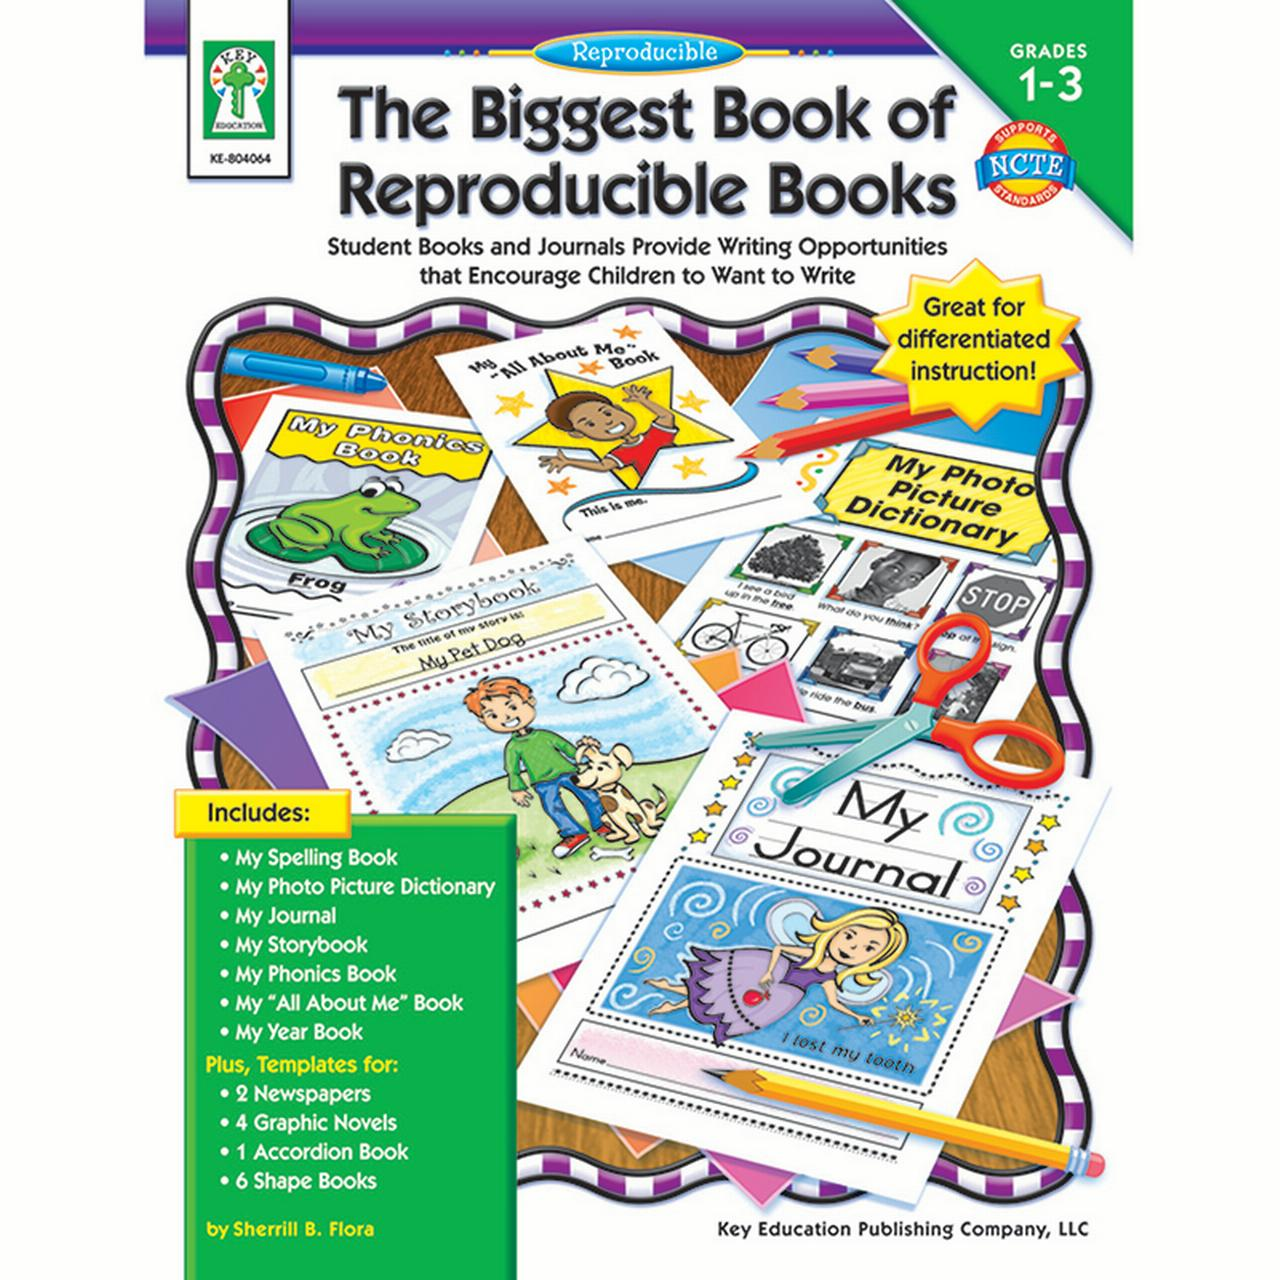 THE BIGGEST BOOK OF REPRODUCIBLE BOOKS